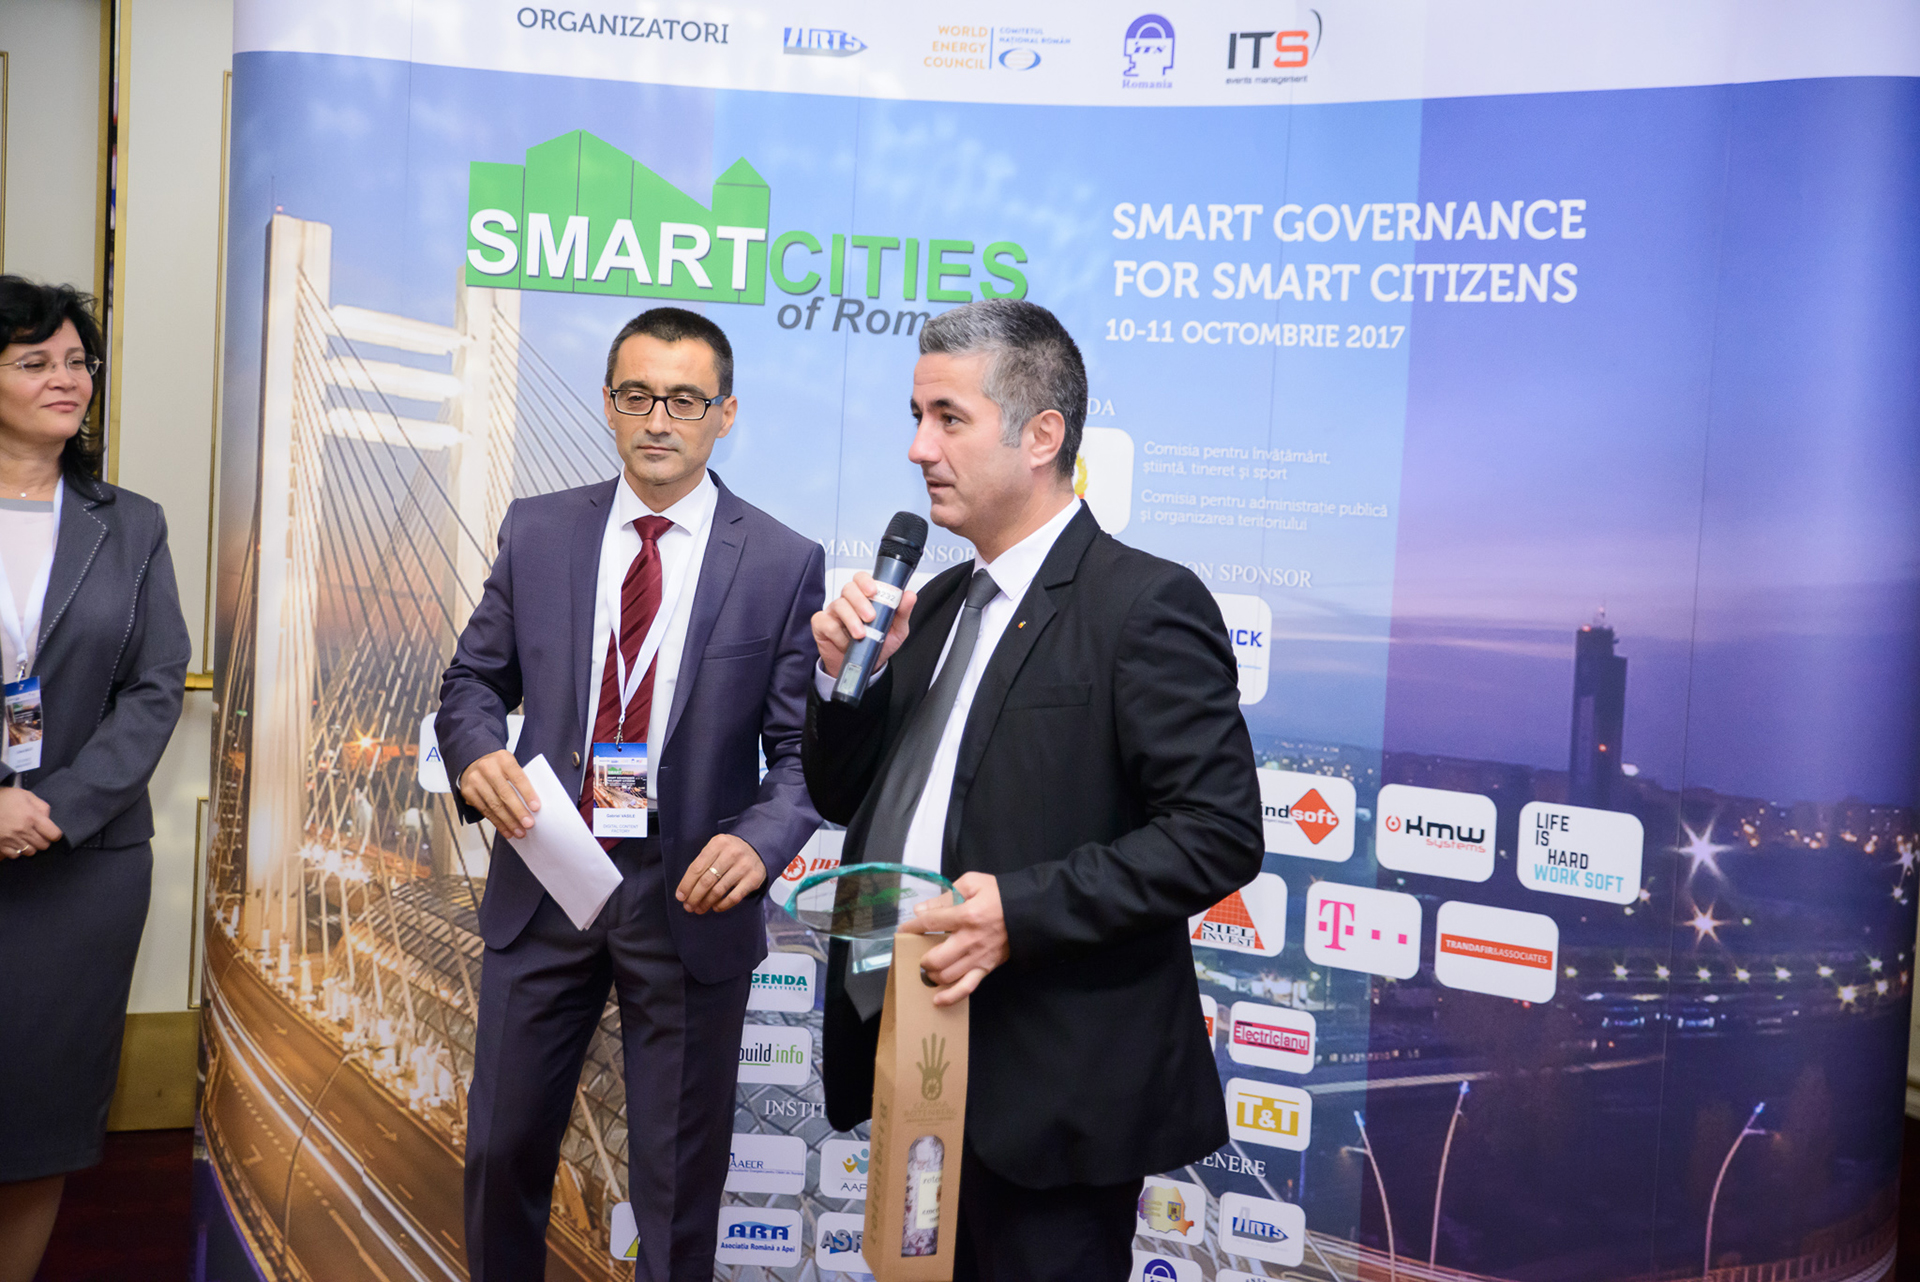 Smart-Cities-Of-Romania-2017---ITS-718